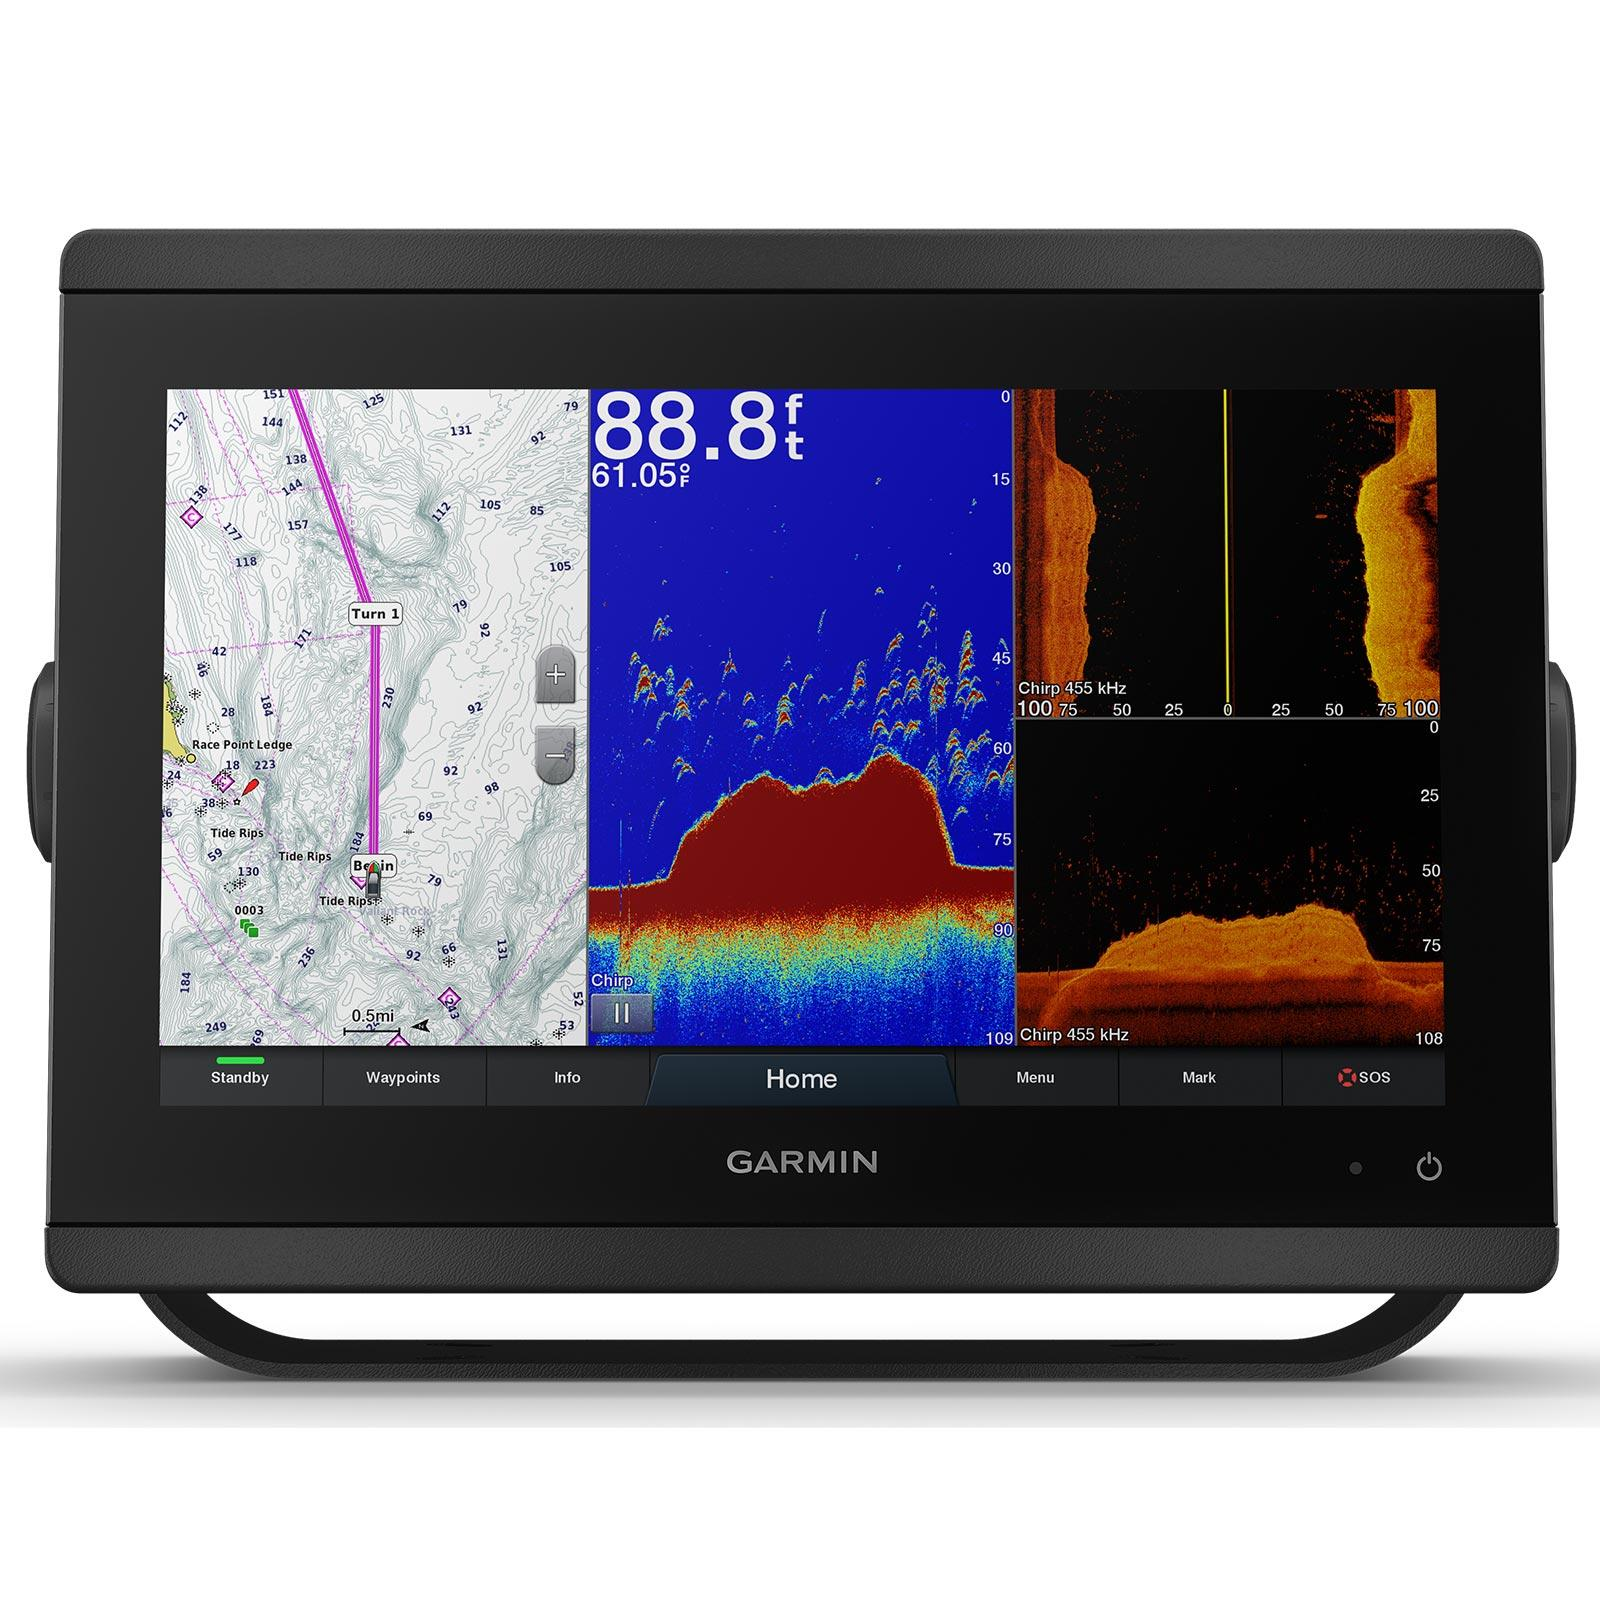 Garmin GPSMAP 8612xsv with Mapping and Sonar